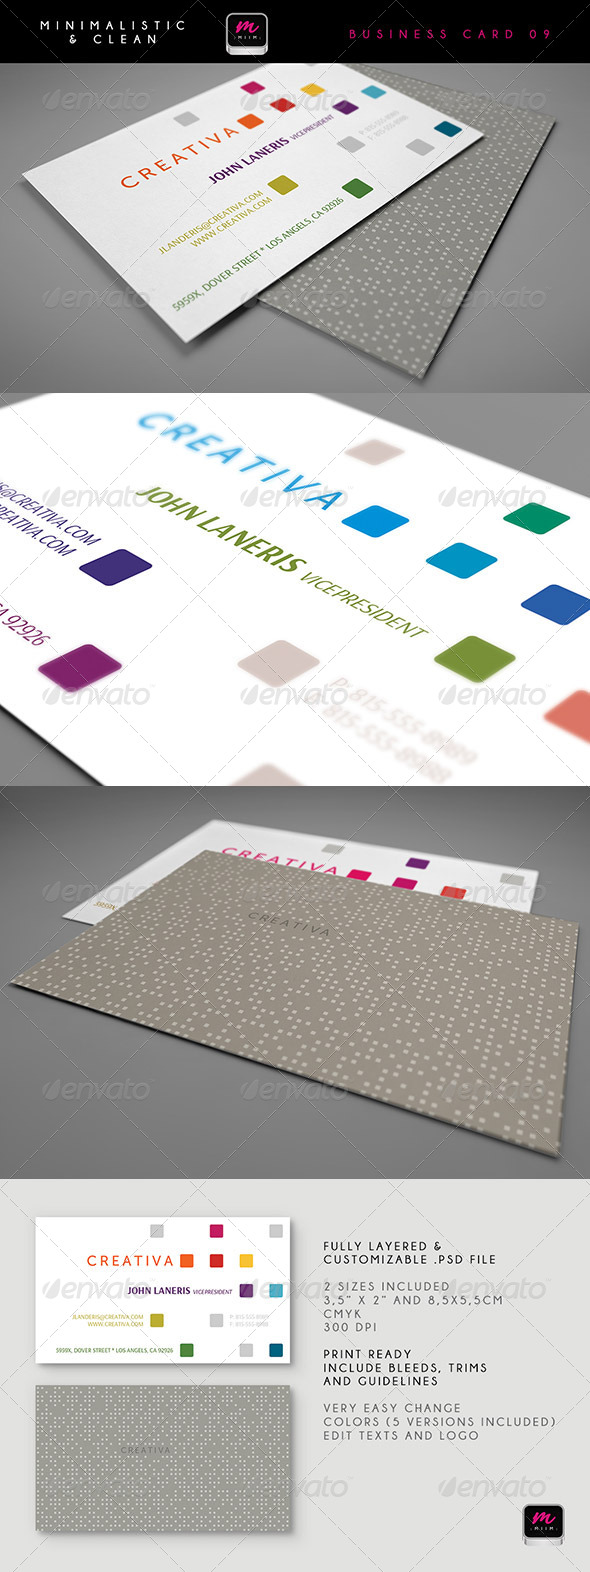 Clean Business Card Template 09 - Creative Business Cards